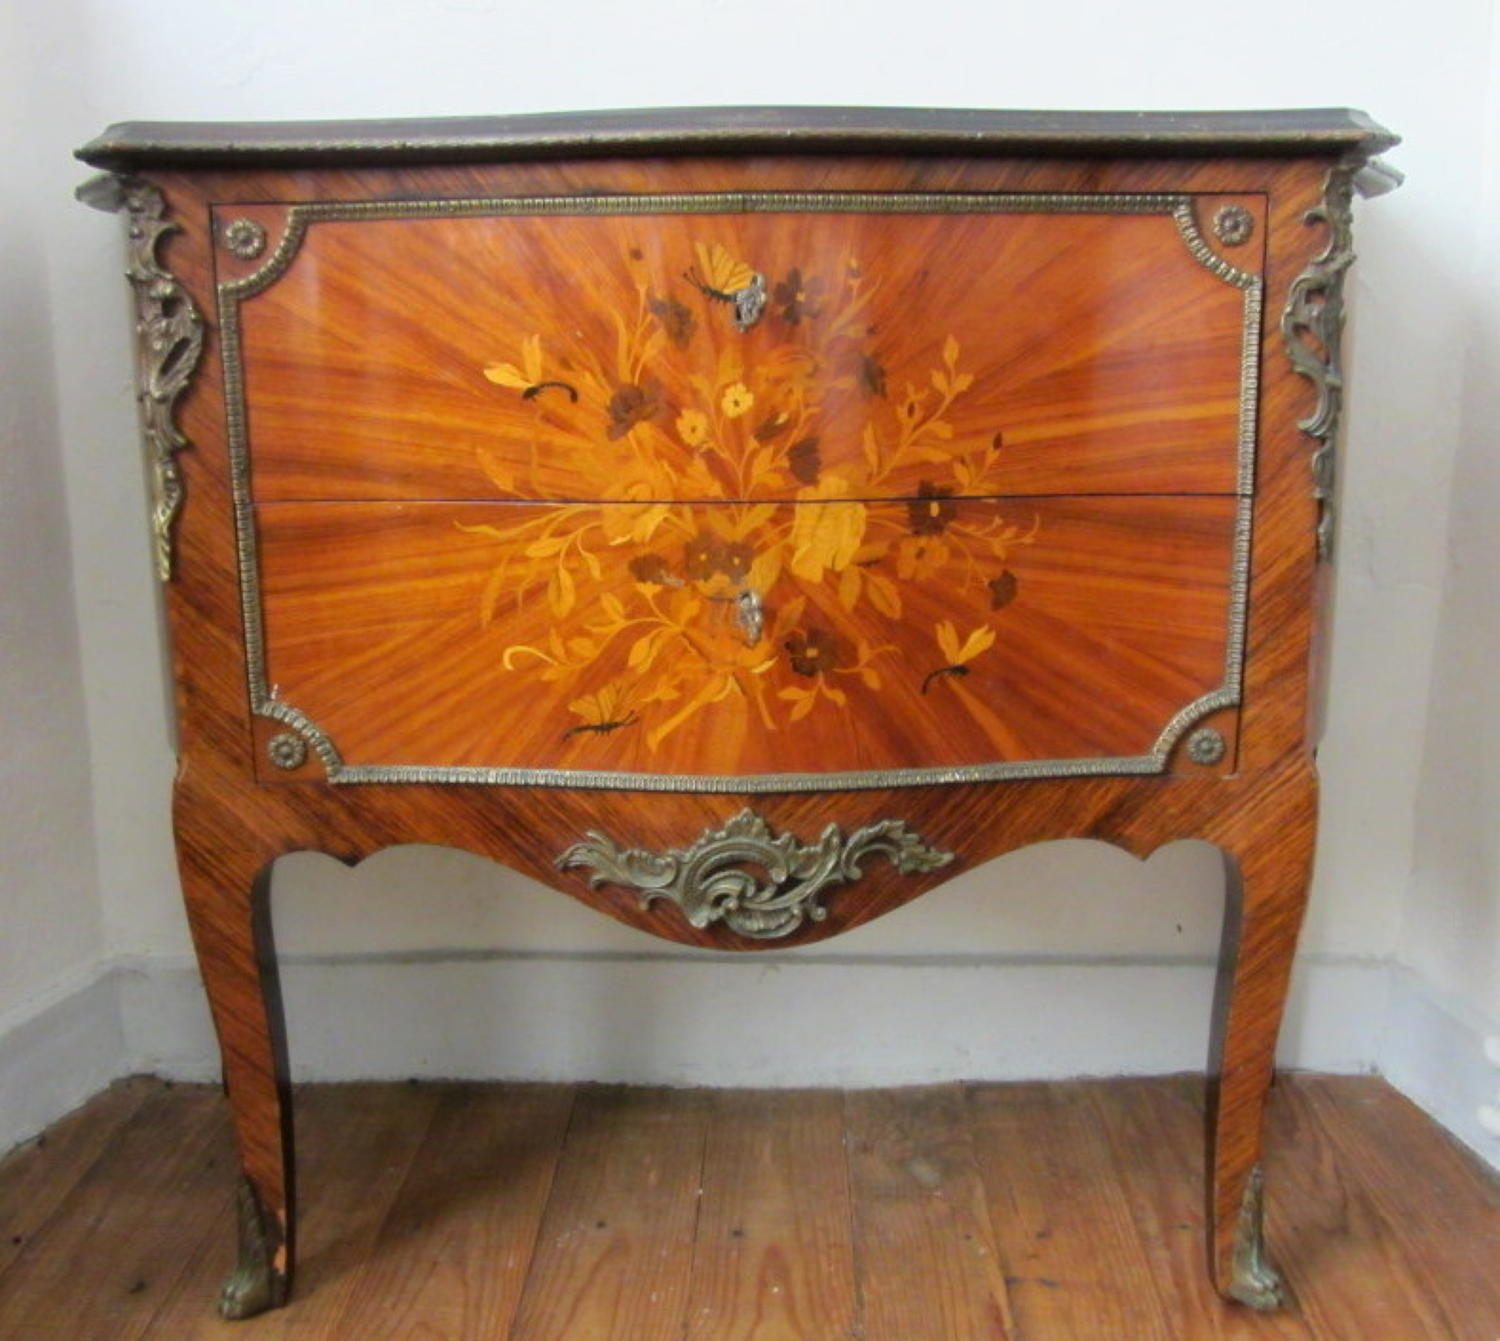 A Louis XV Style Kingwood Marquetry Commode with Gilt Metal Mounts